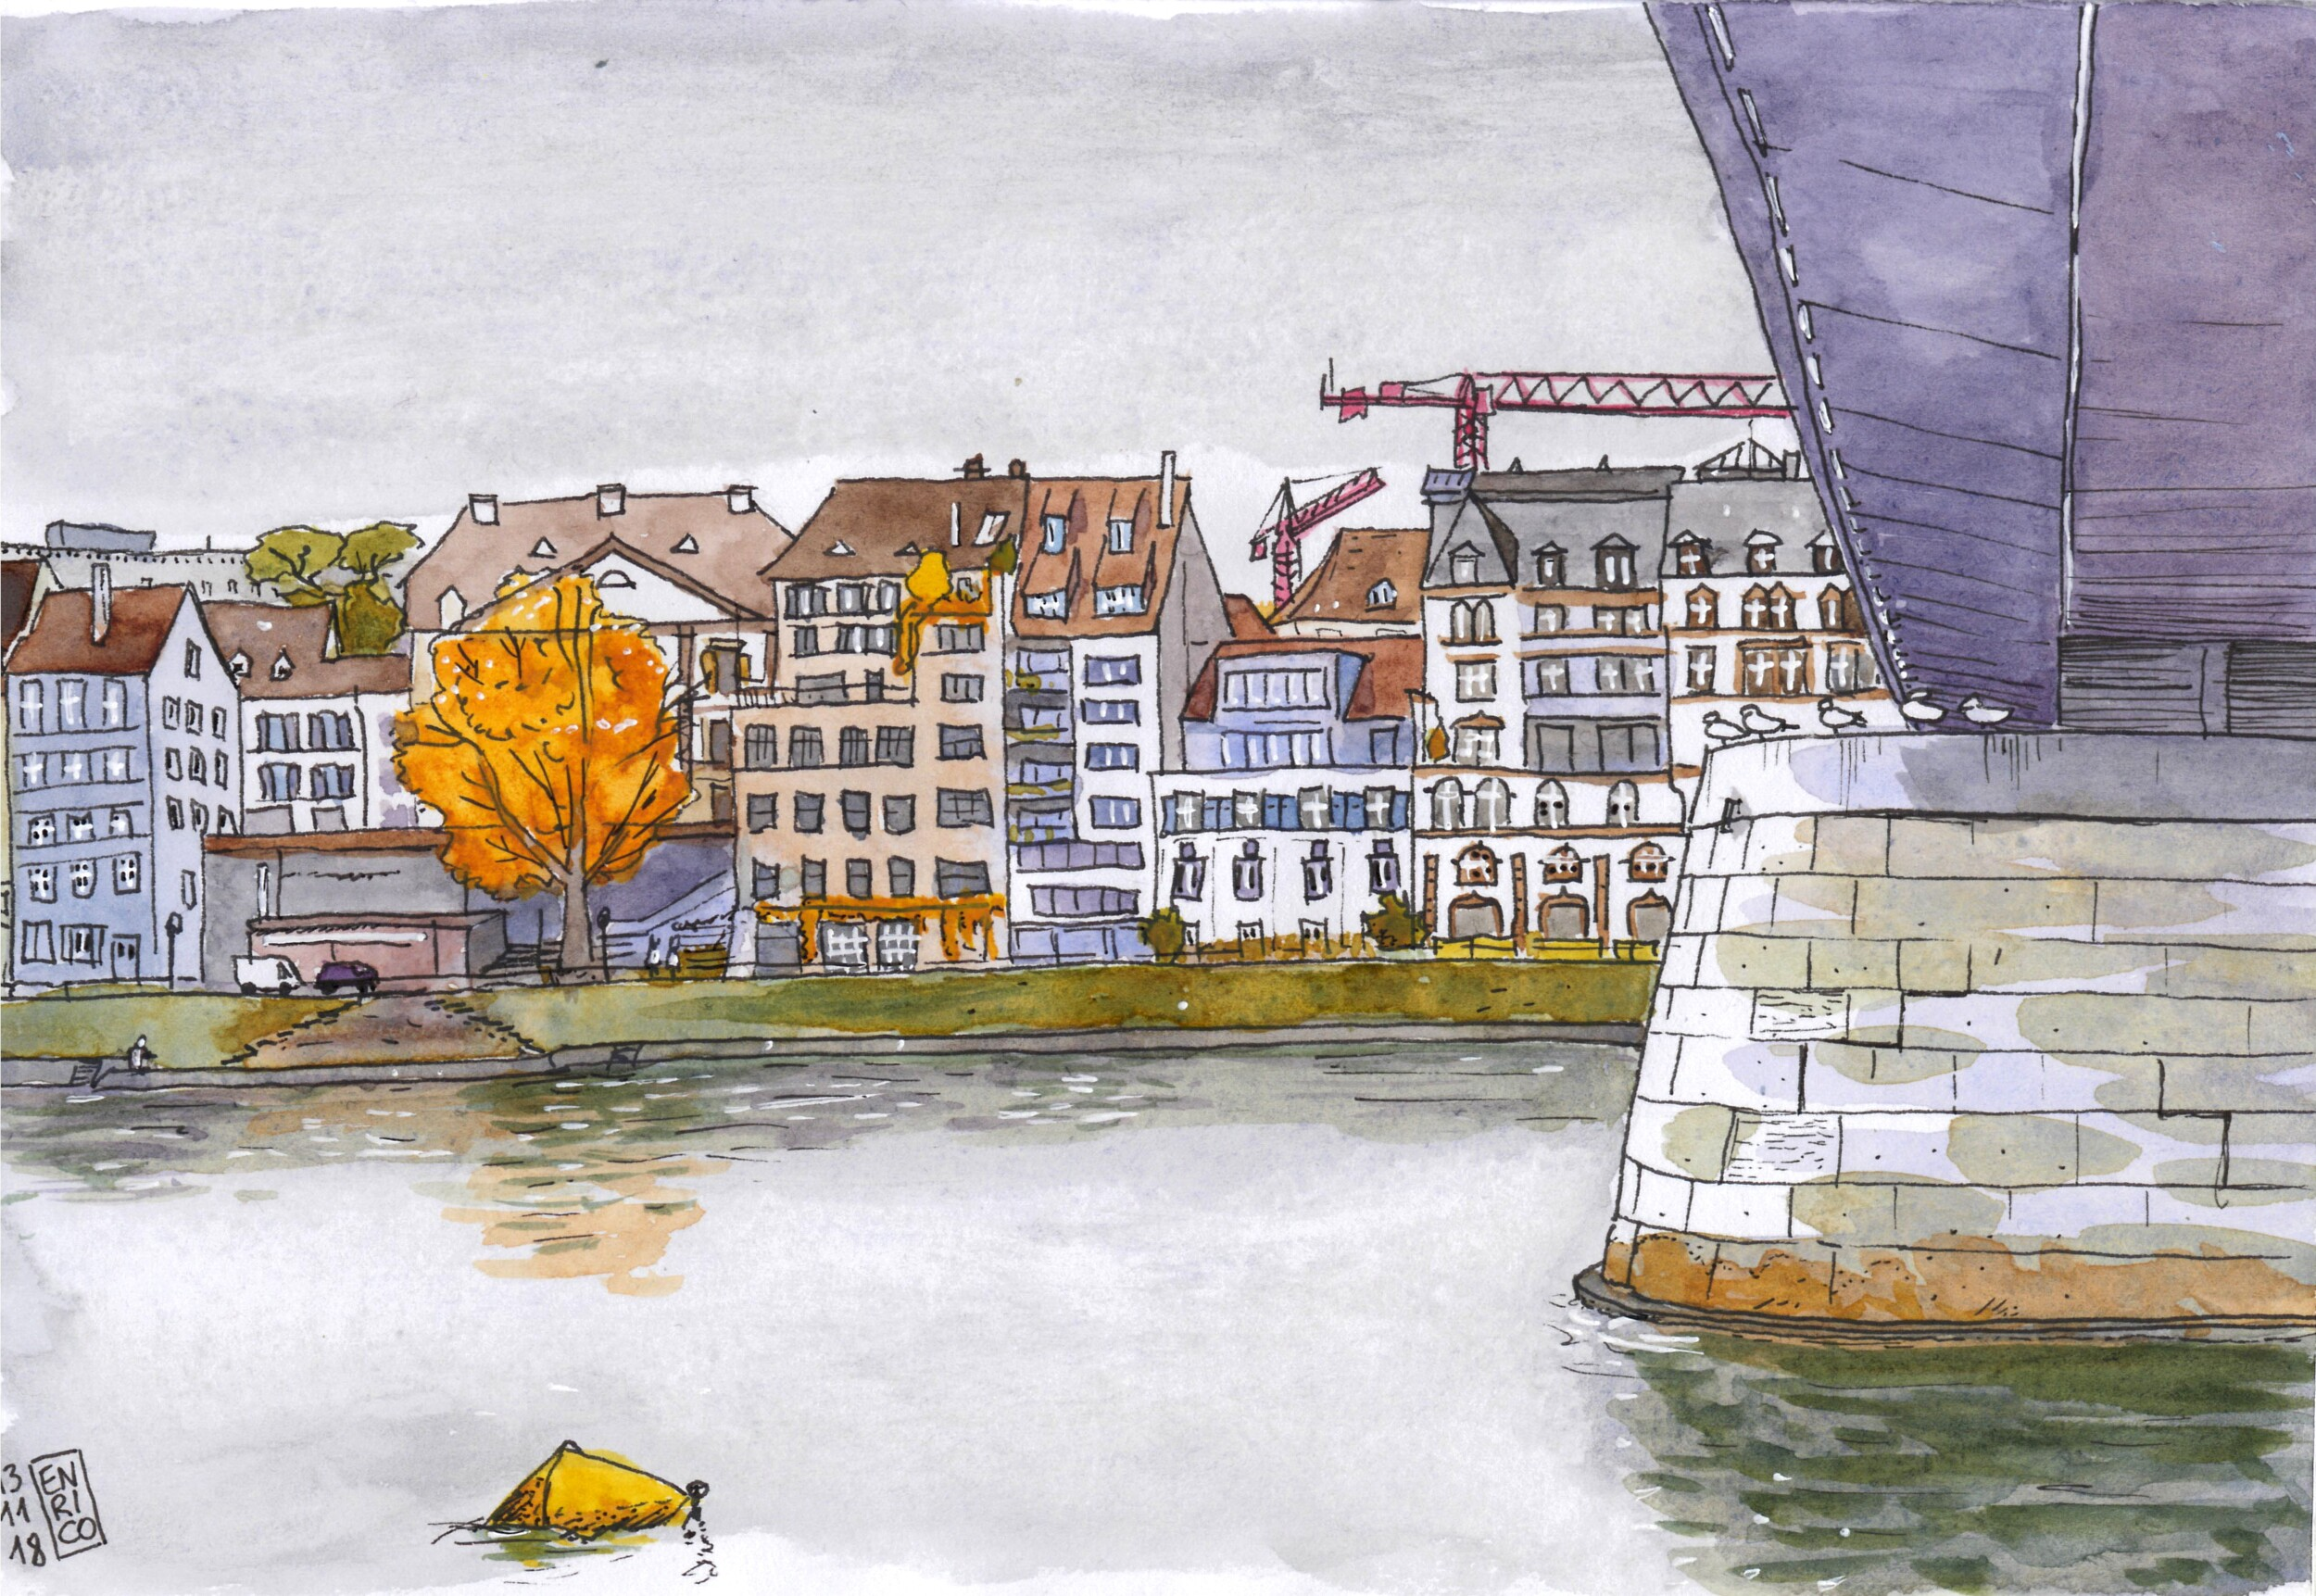 Another rainy day, so I had to sketch from under the bridge, Johanniterbrücke.